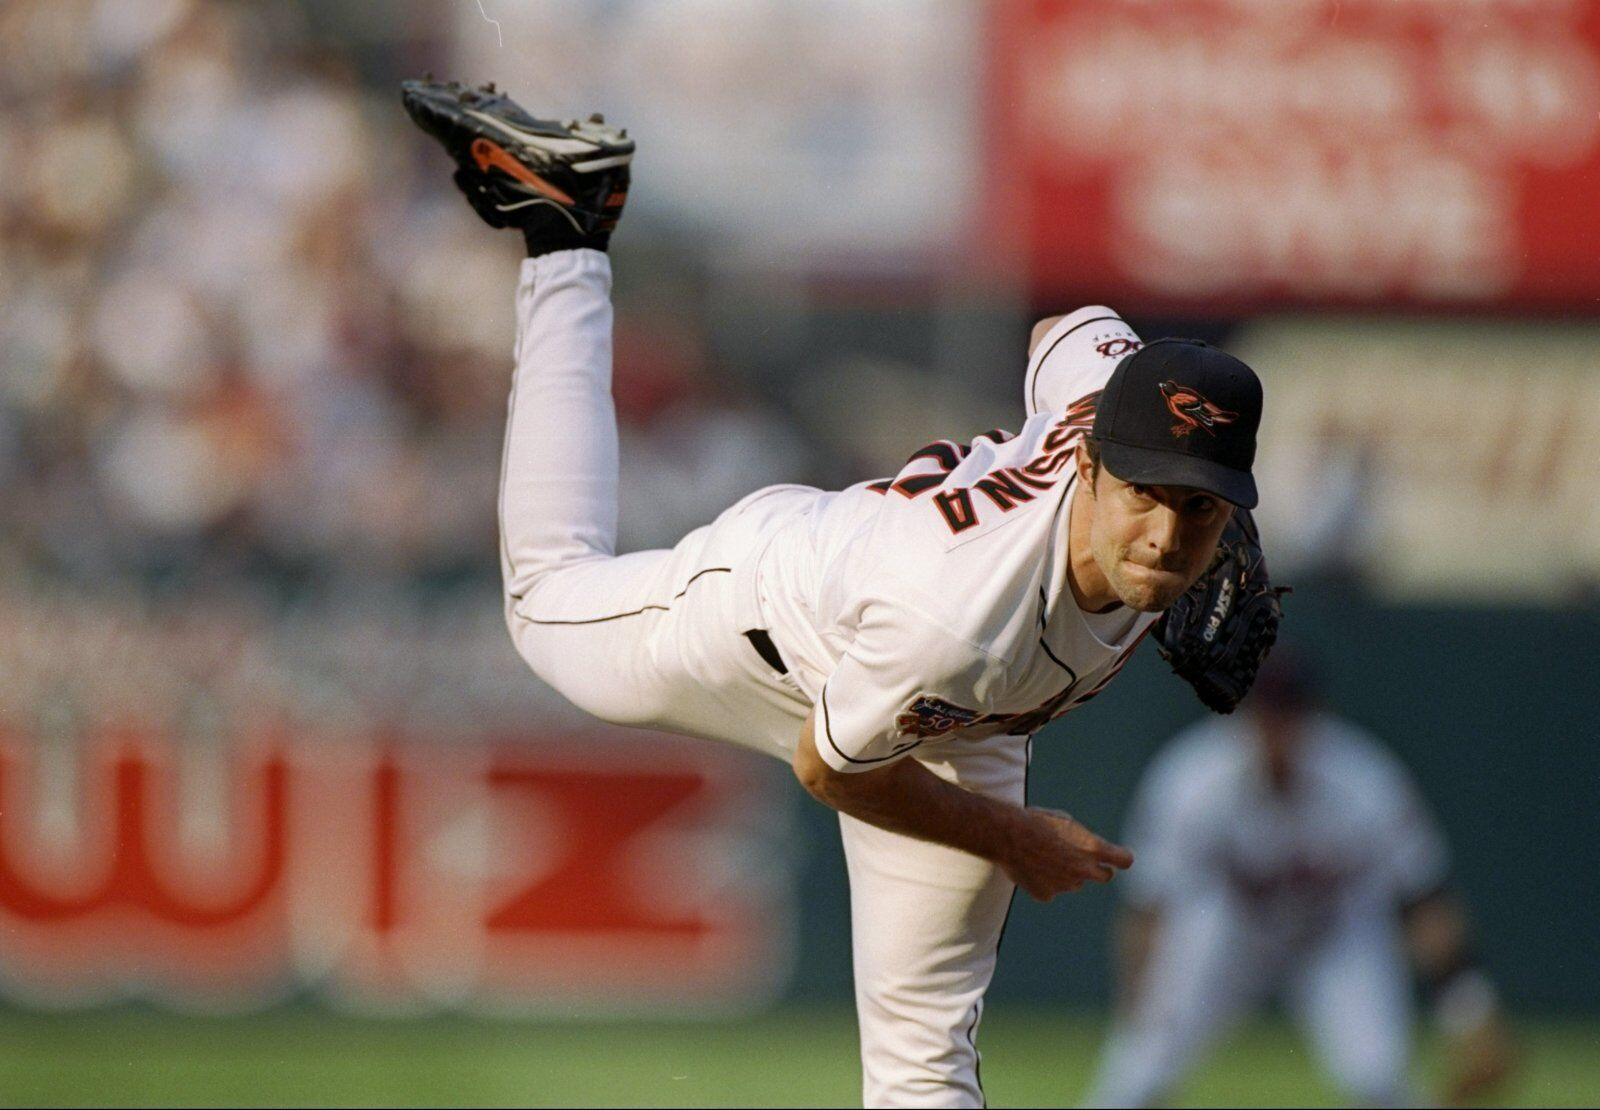 61a3de2d8 Will Mike Mussina wear a Baltimore Orioles hat in the Hall of Fame